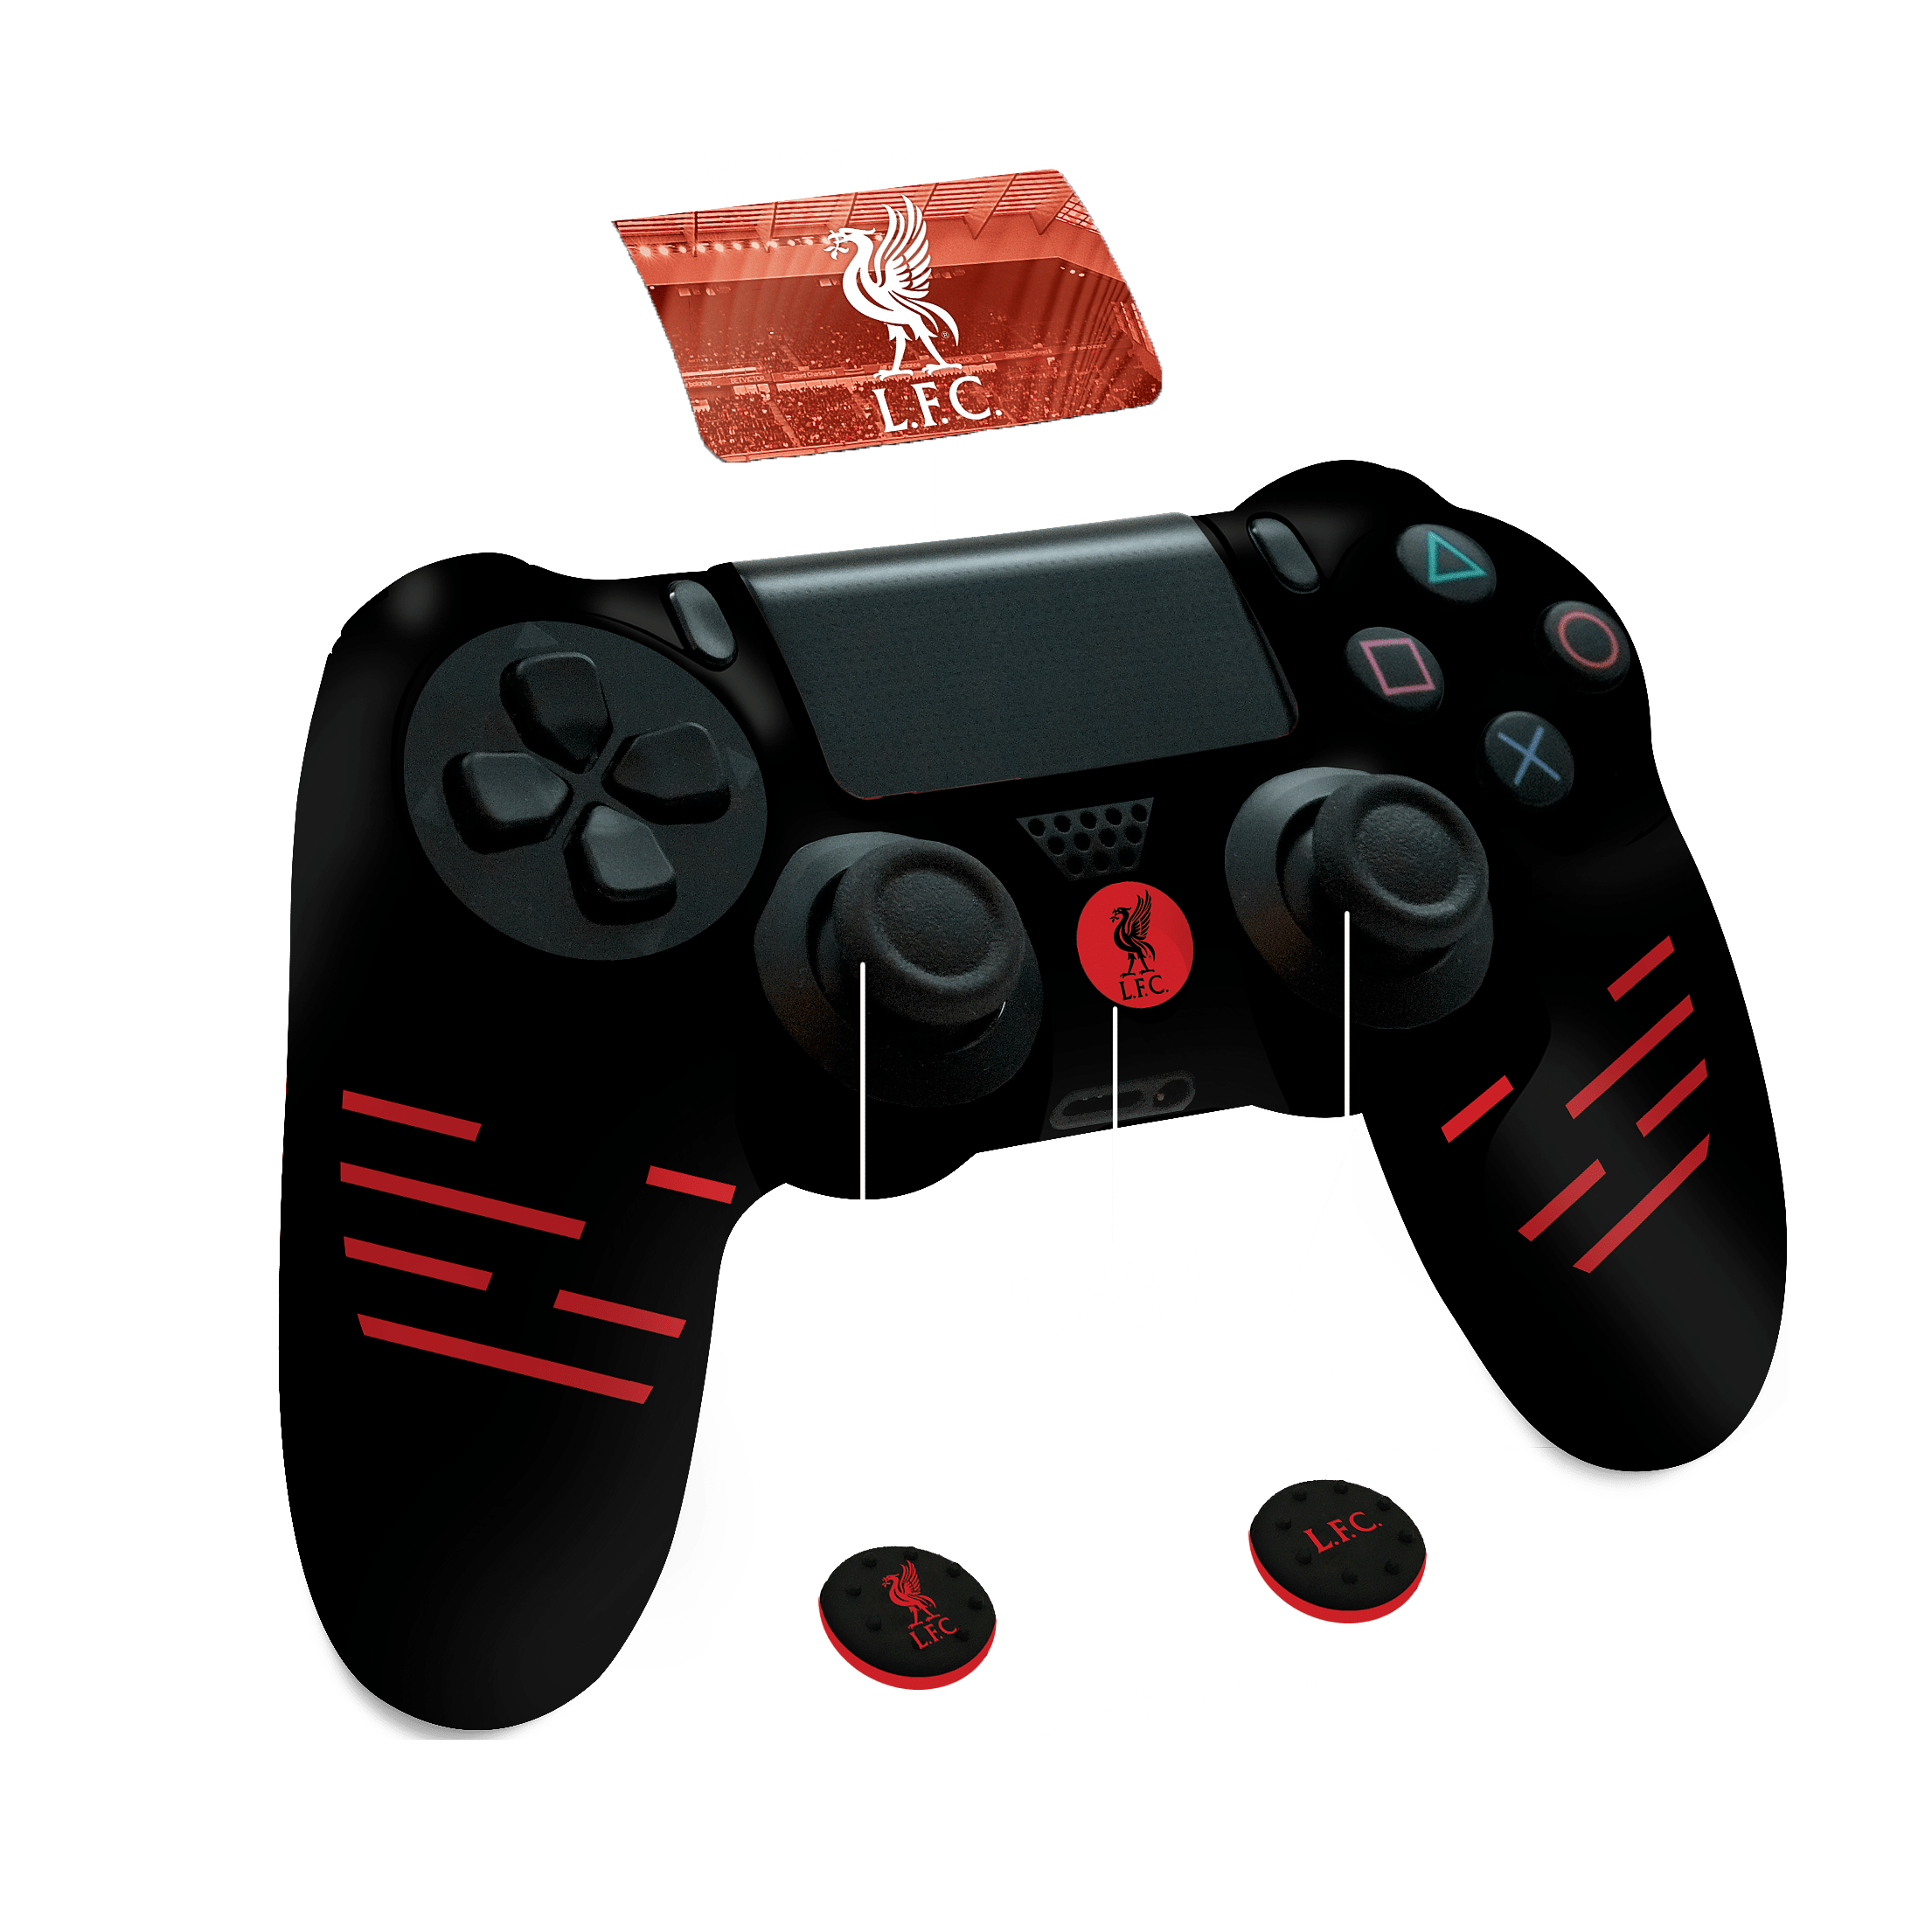 Video Games & Consoles Professional Sale Liverpool F.c Xbox One Skin Bundle Reputation First